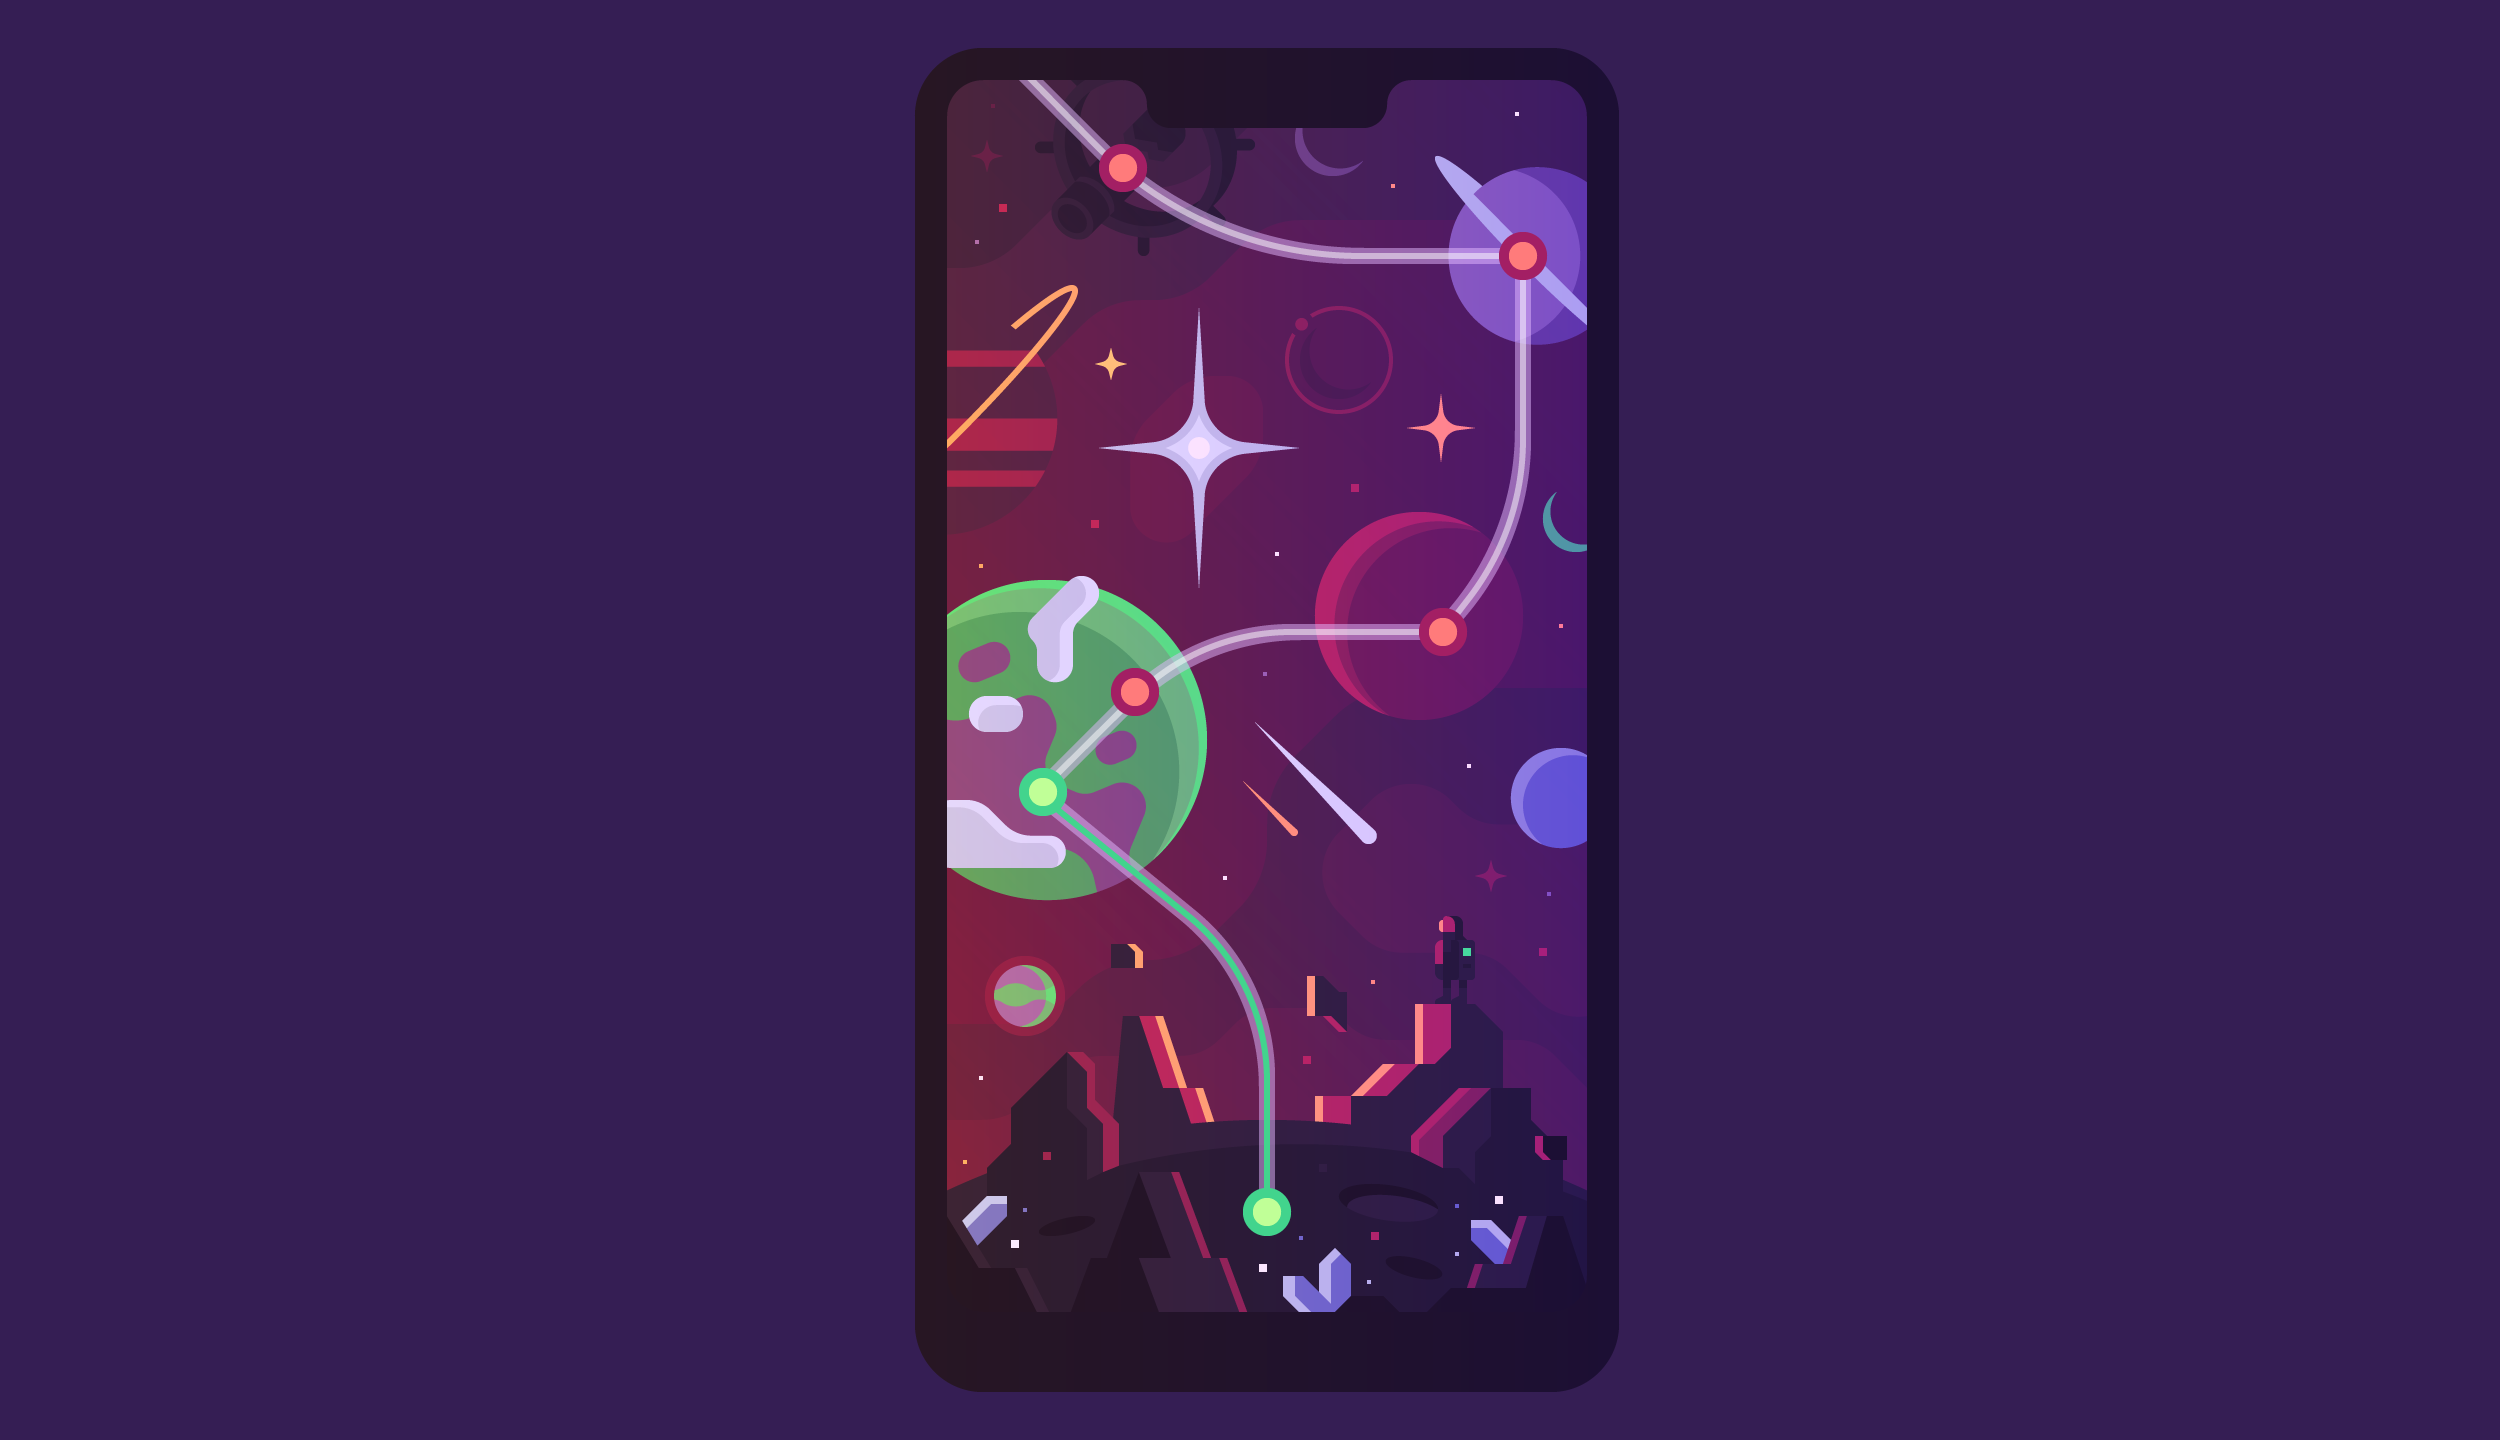 Dots space game map concept art by Canopy Design and Illustration.